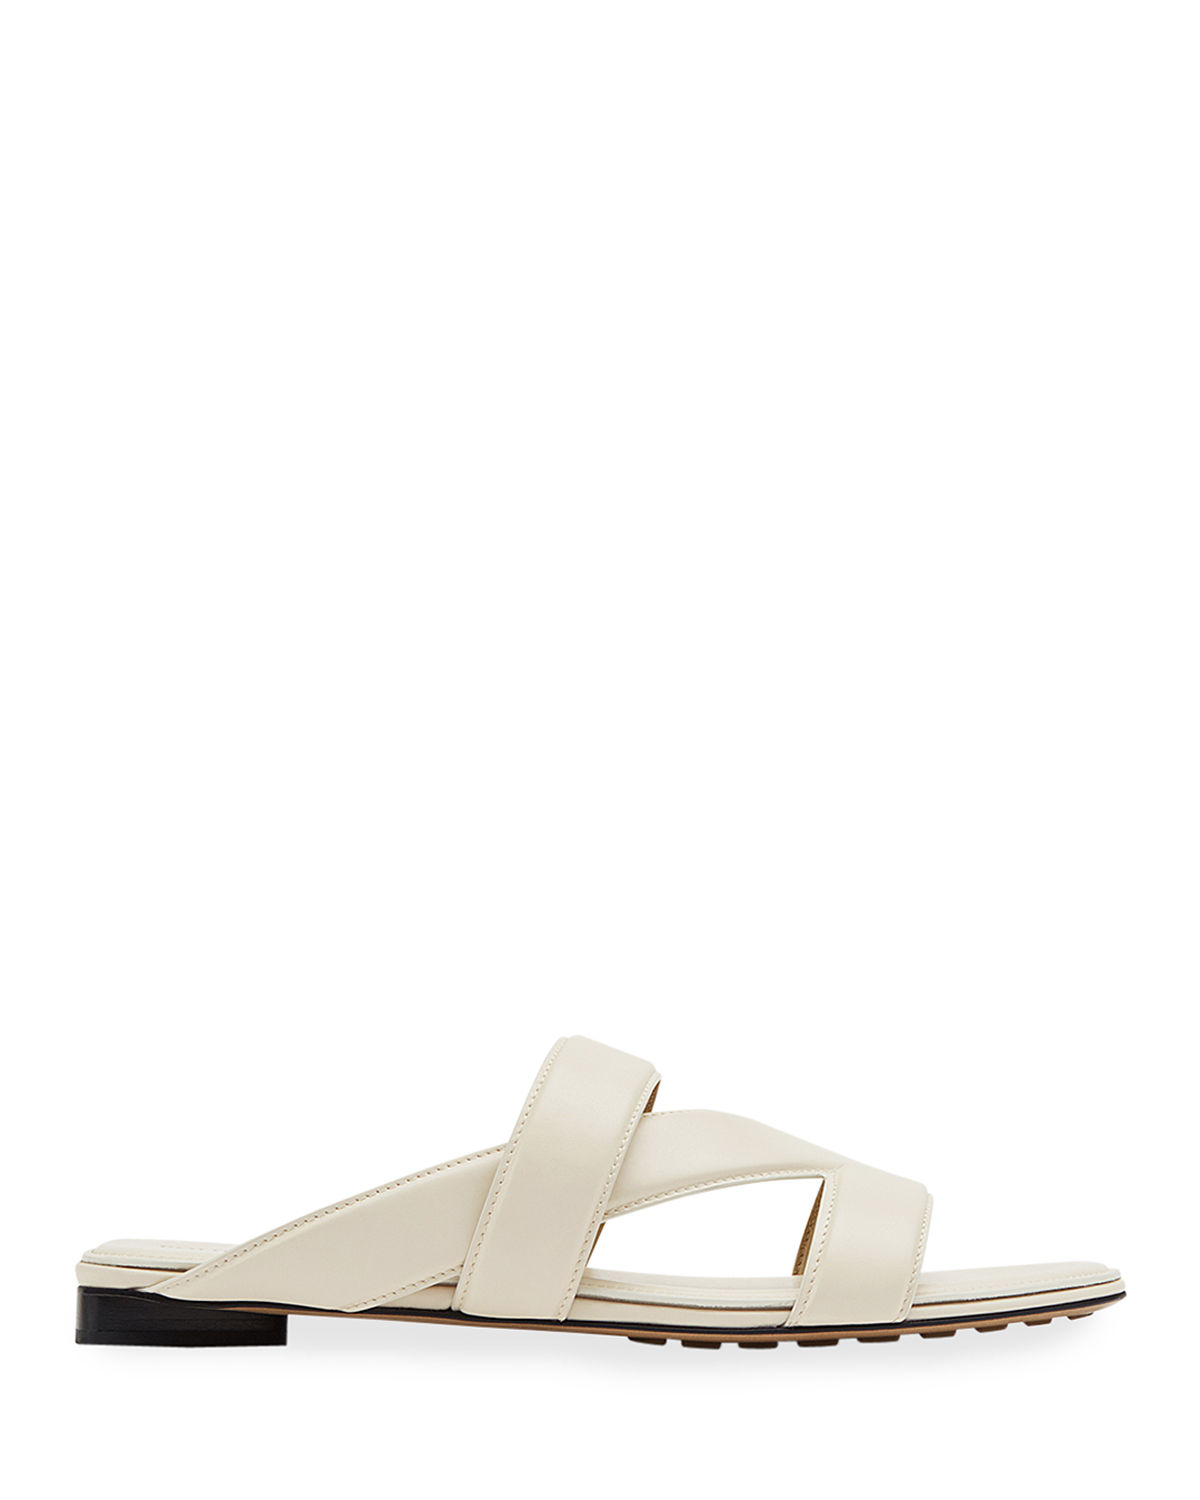 The Band Flat Sandals